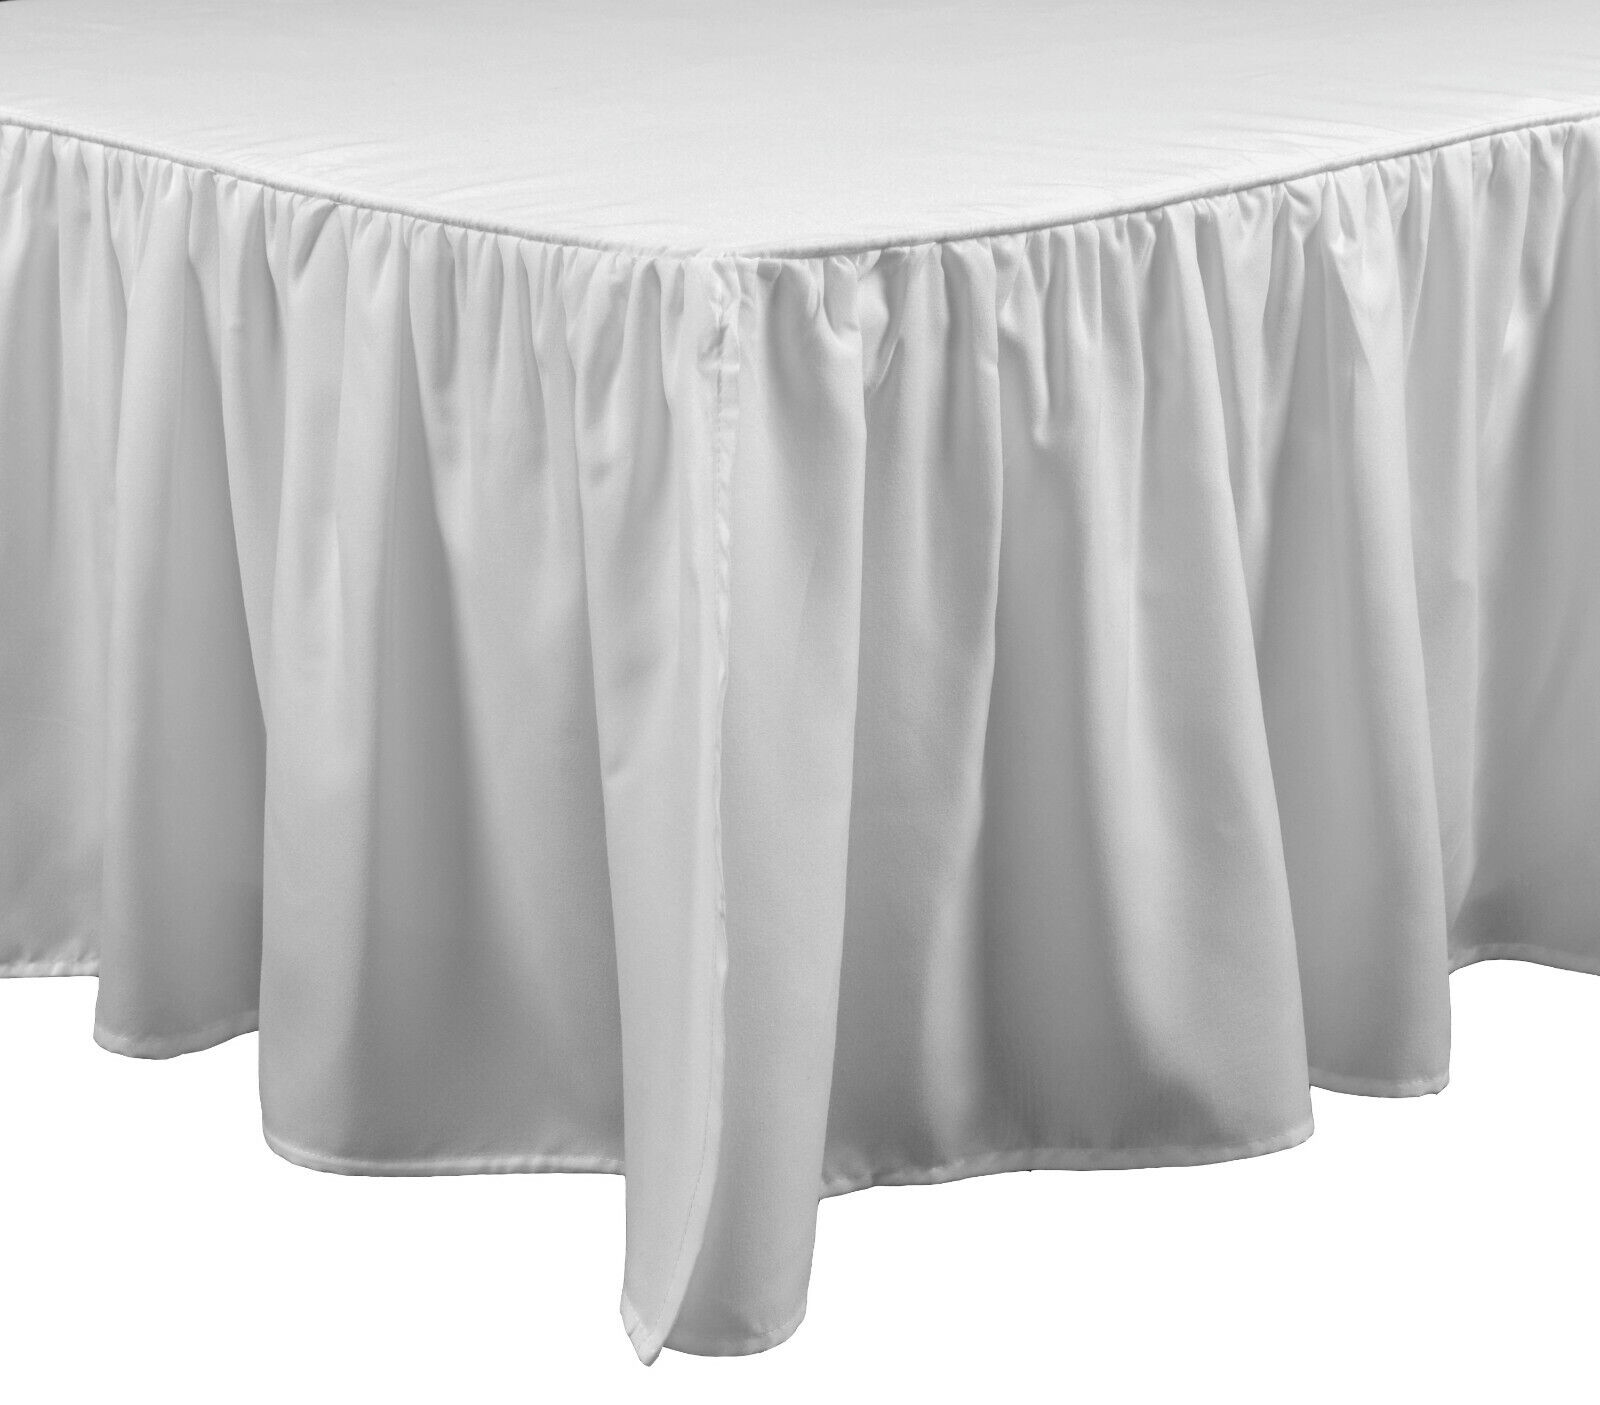 Brielle Home® Bed skirt NEW Bed Skirts